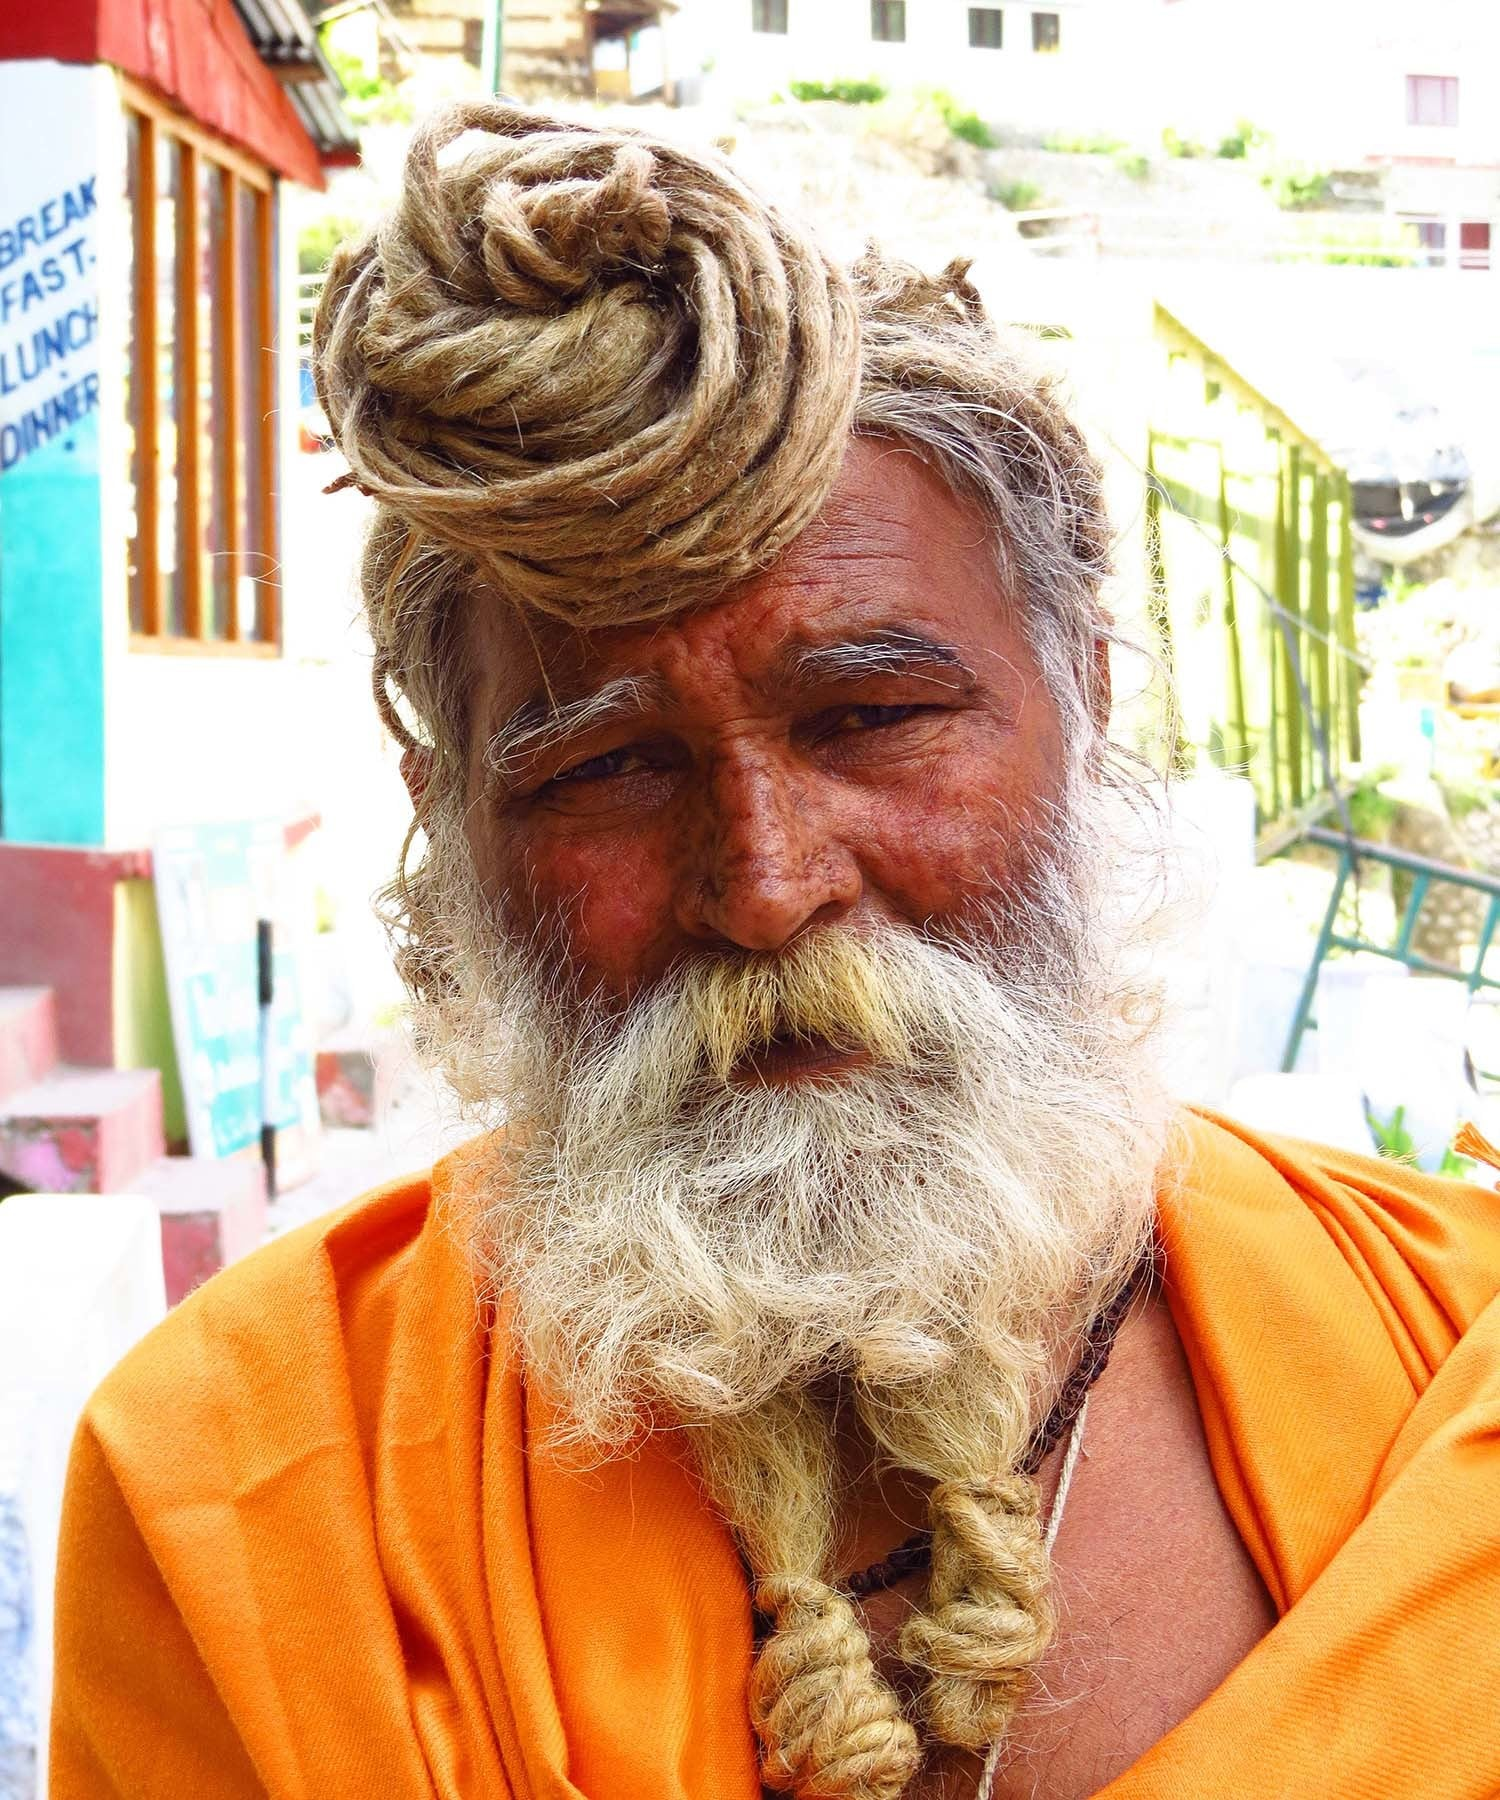 A saddhu in Gangotri.